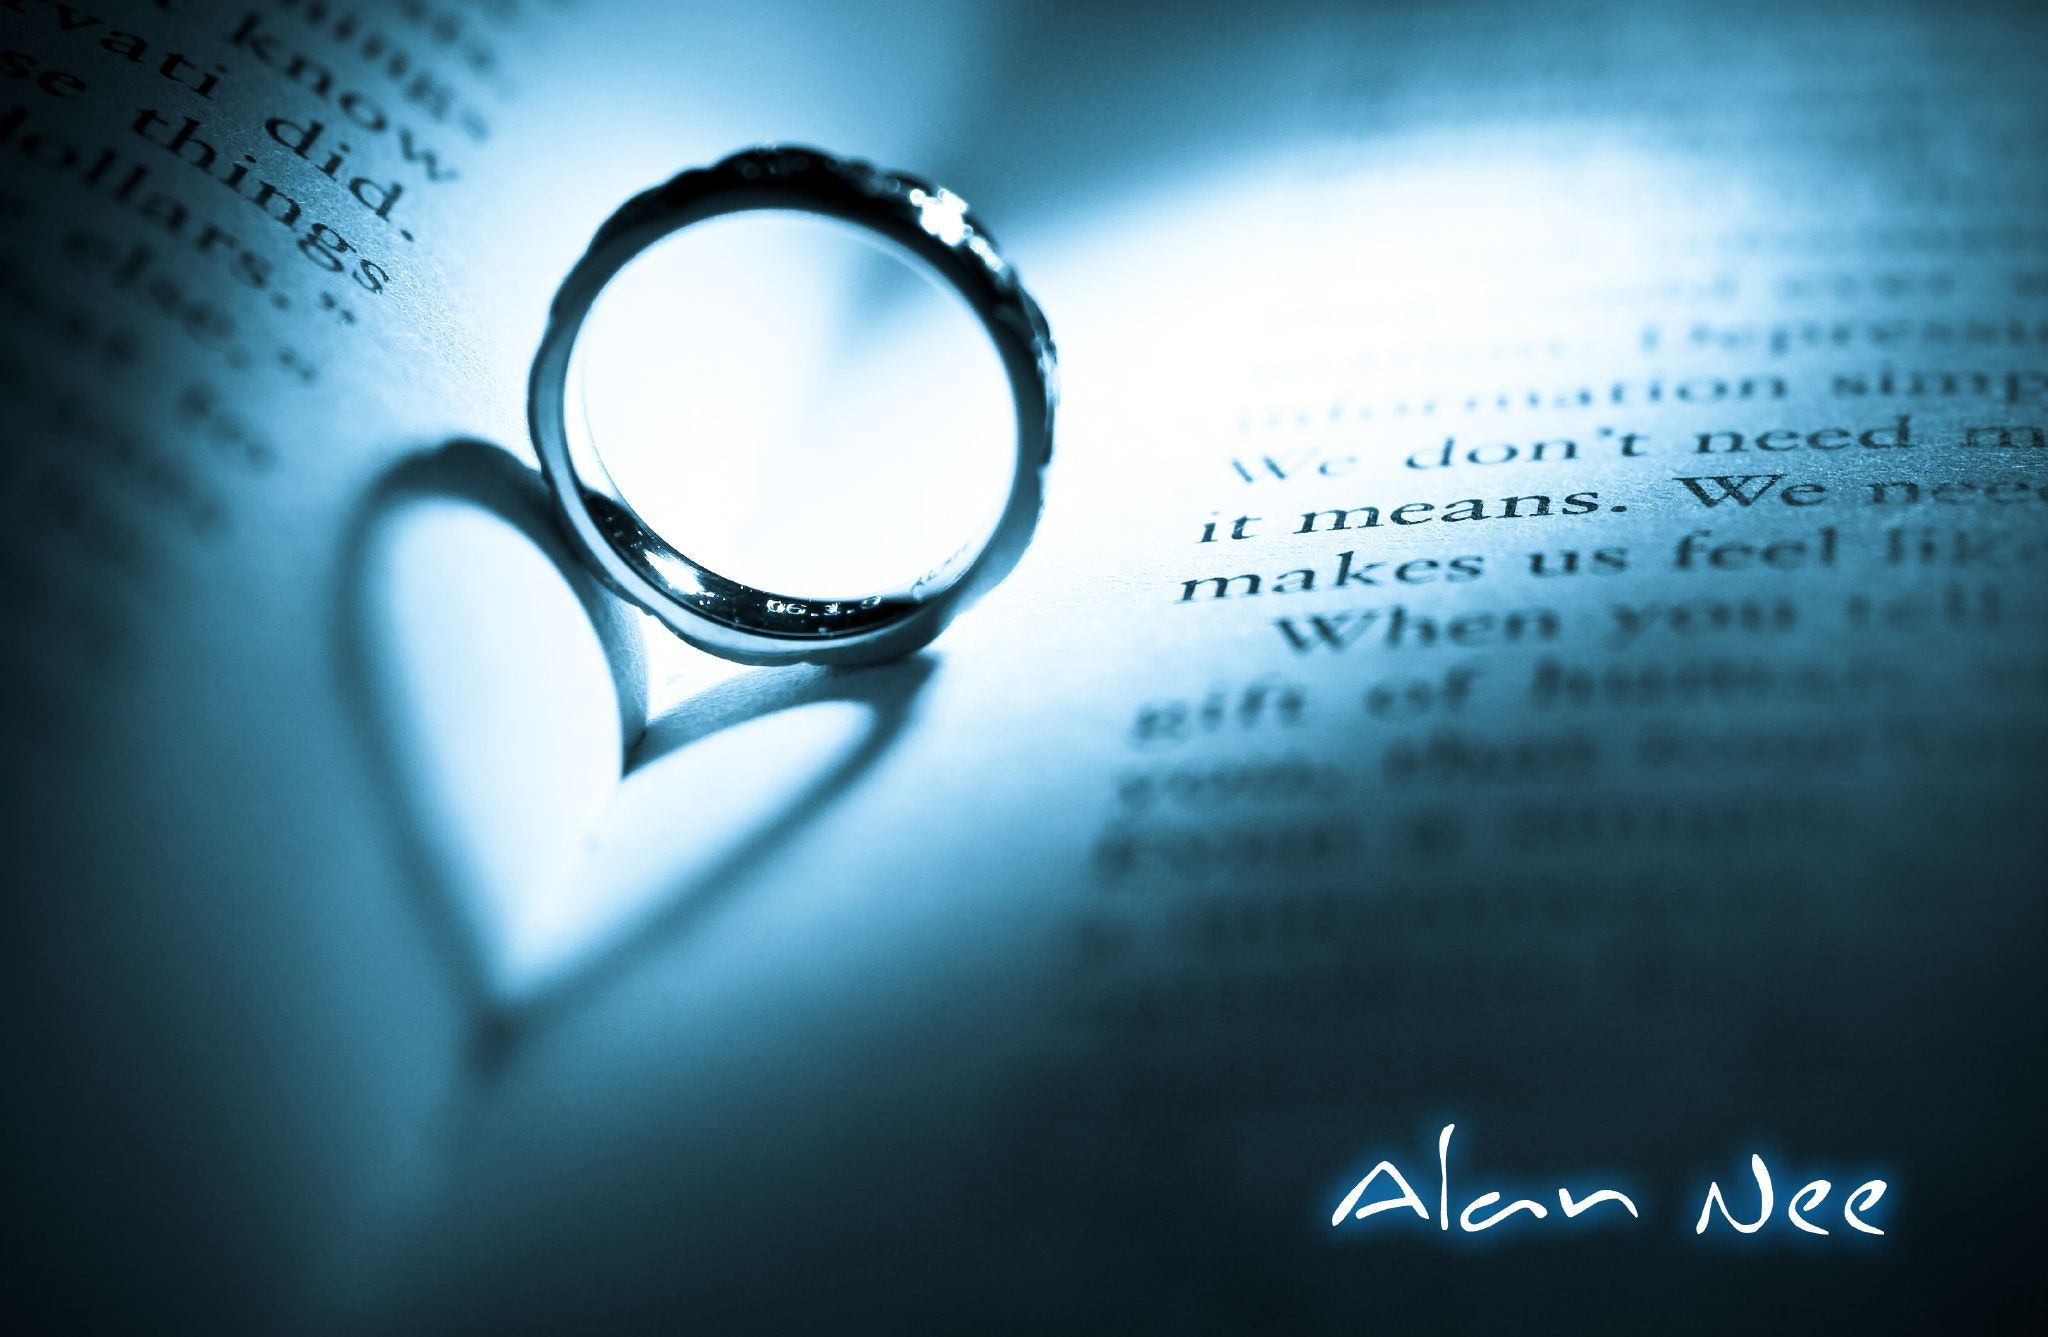 Photograph Ring with a Heart by Alan Nee on 500px